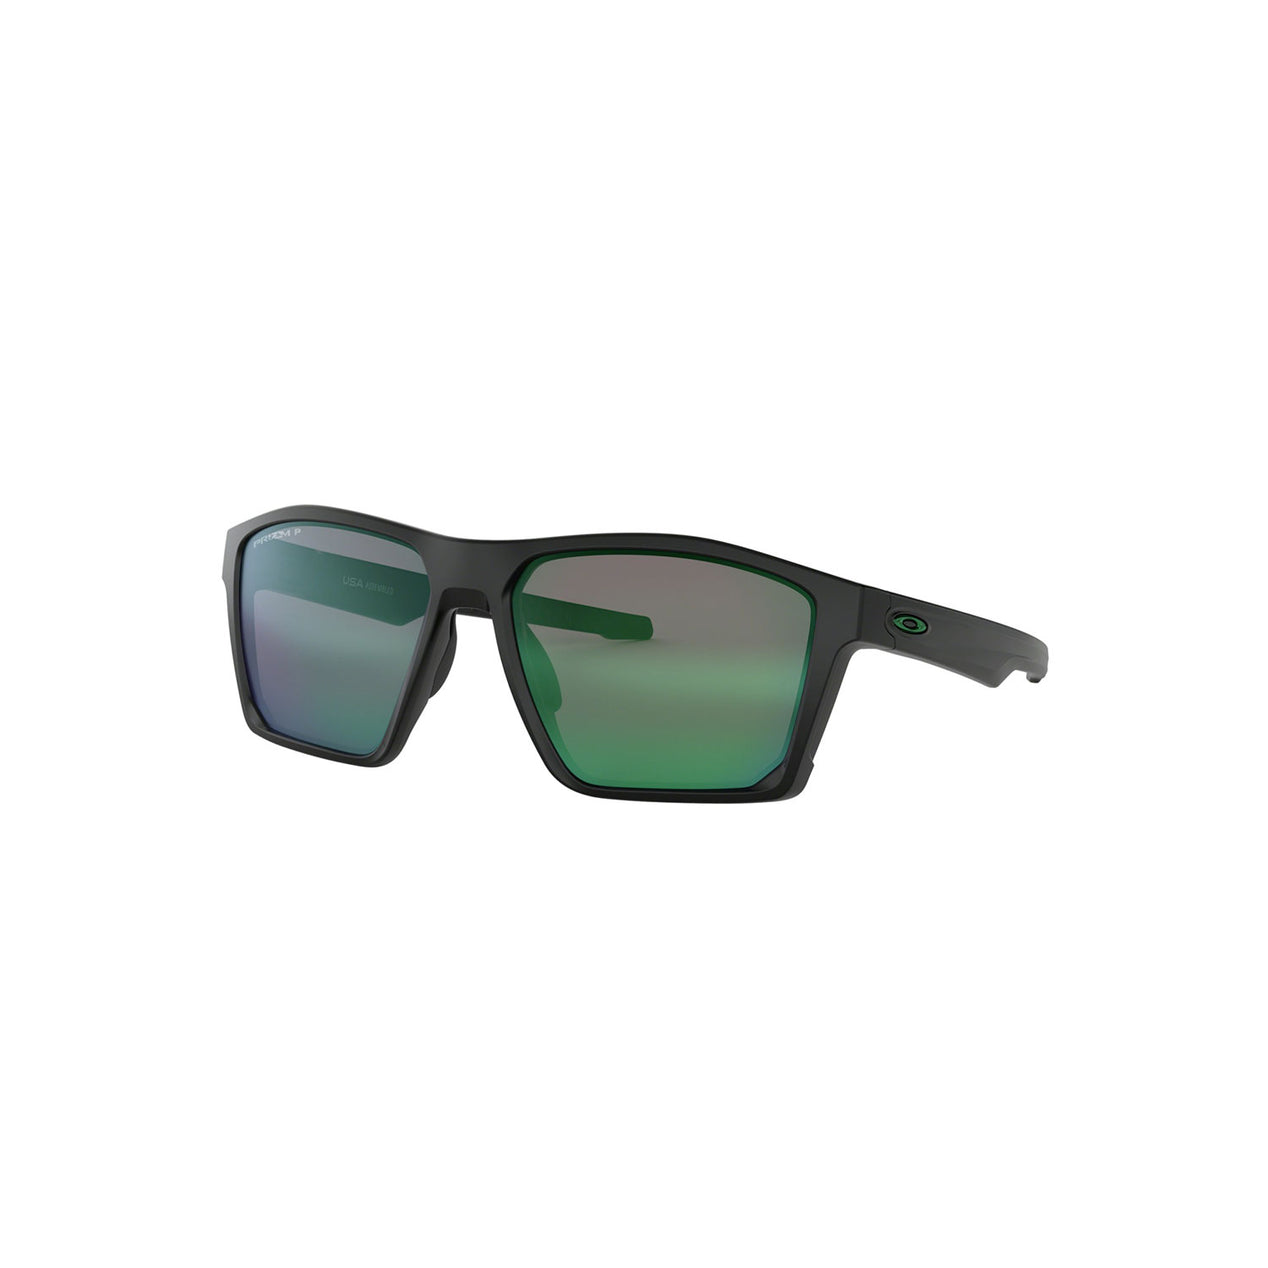 a6276b43d2 Oakley Targetline Matte Black - Prizm Jade Iridium Polarized Lens Sunglasses